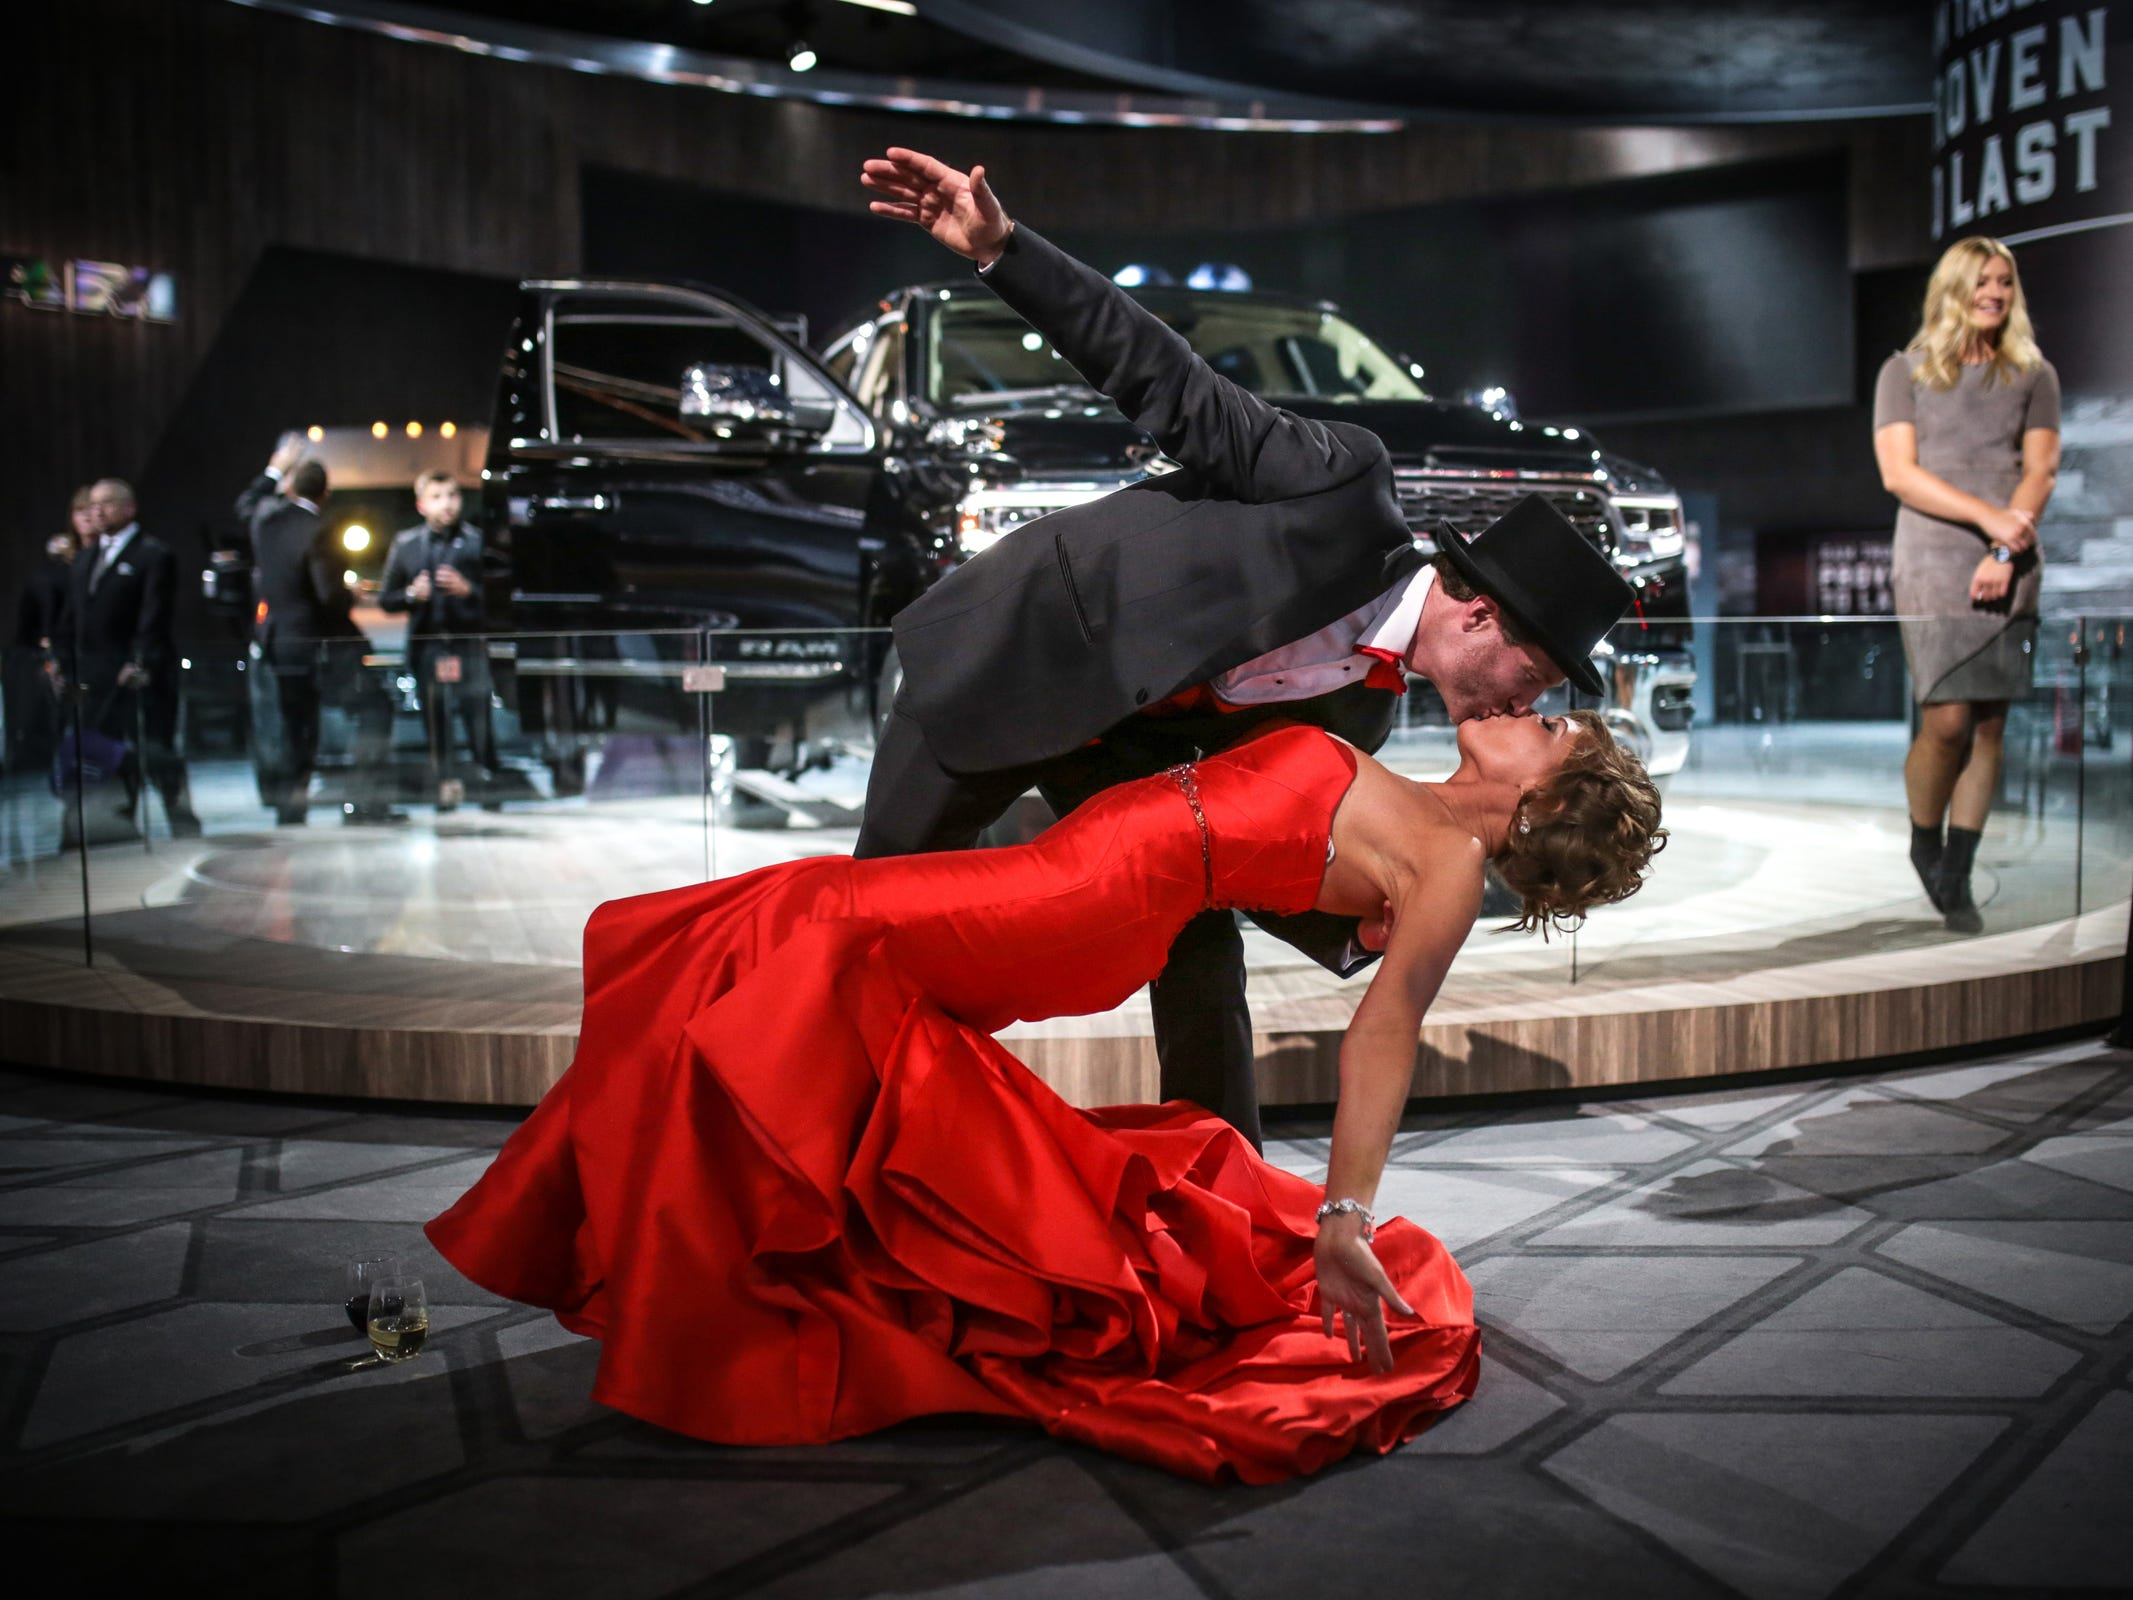 Greg Schmidt of Newaygo dips his fiancee Marie Anderson of Southfield in front of Ram 1500 Limited during the 2018 North American International Auto Show Charity Preview at Cobo Center in downtown Detroit on January 19, 2018.